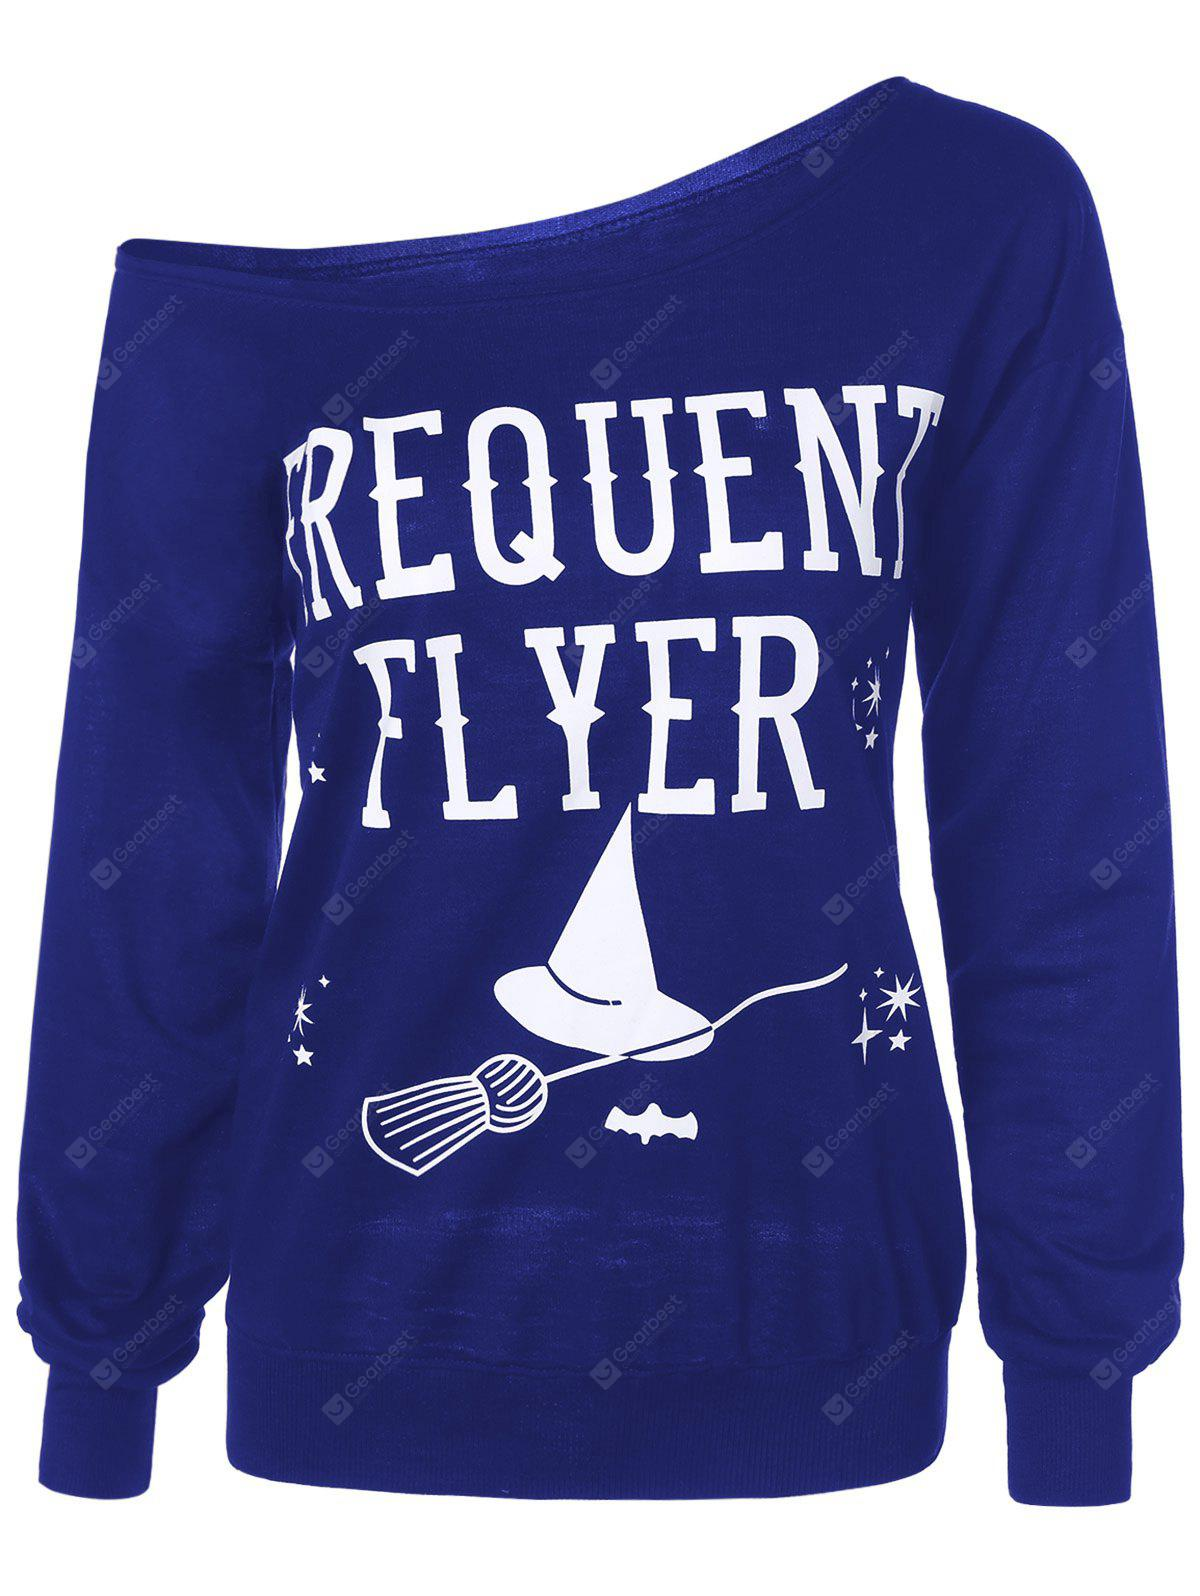 Frequency Flyer Letter Sweatshirt with Skew Neck